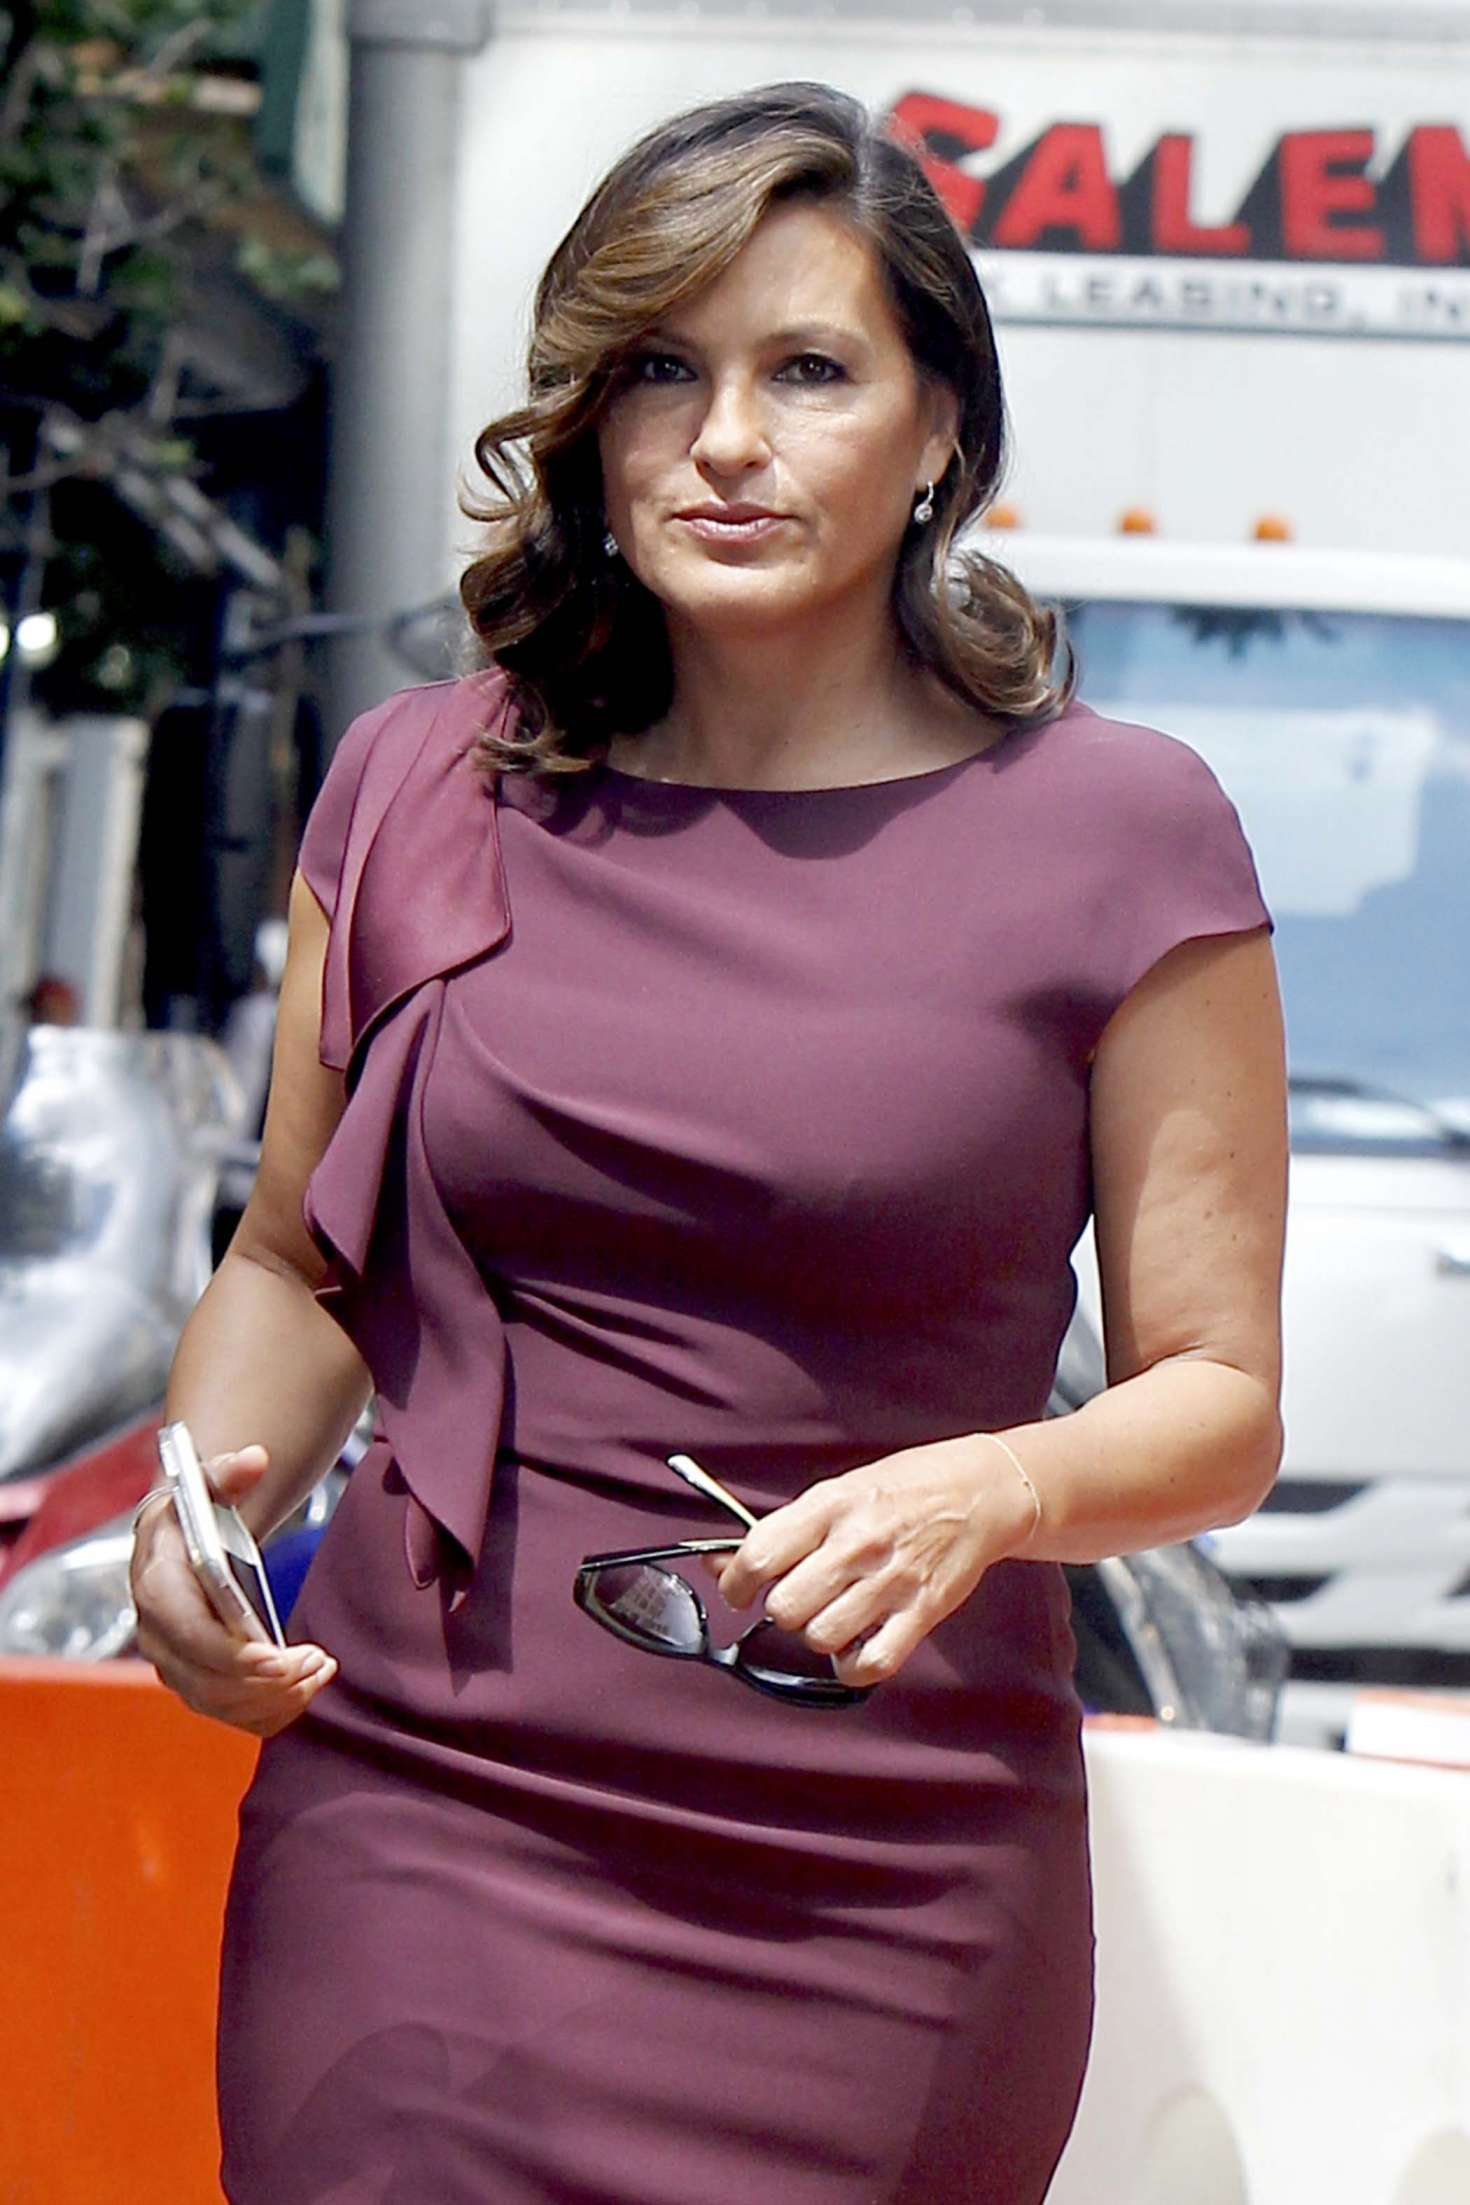 Mariska hargitay young — photo 7